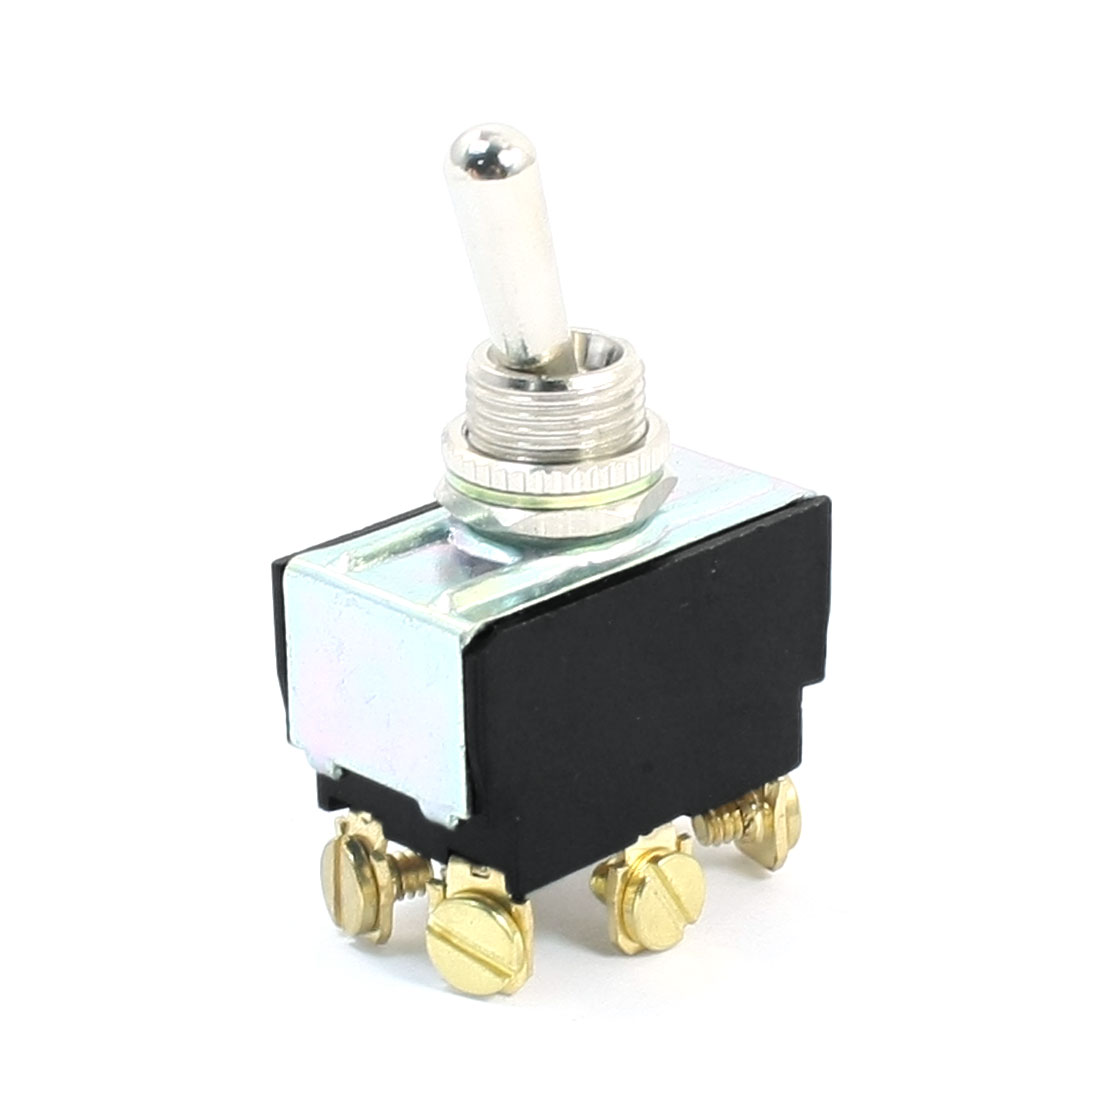 12mm Panel Mount DPDT ON/ON Locking 2 Position Toggle Switch AC 250V 10A T6022W